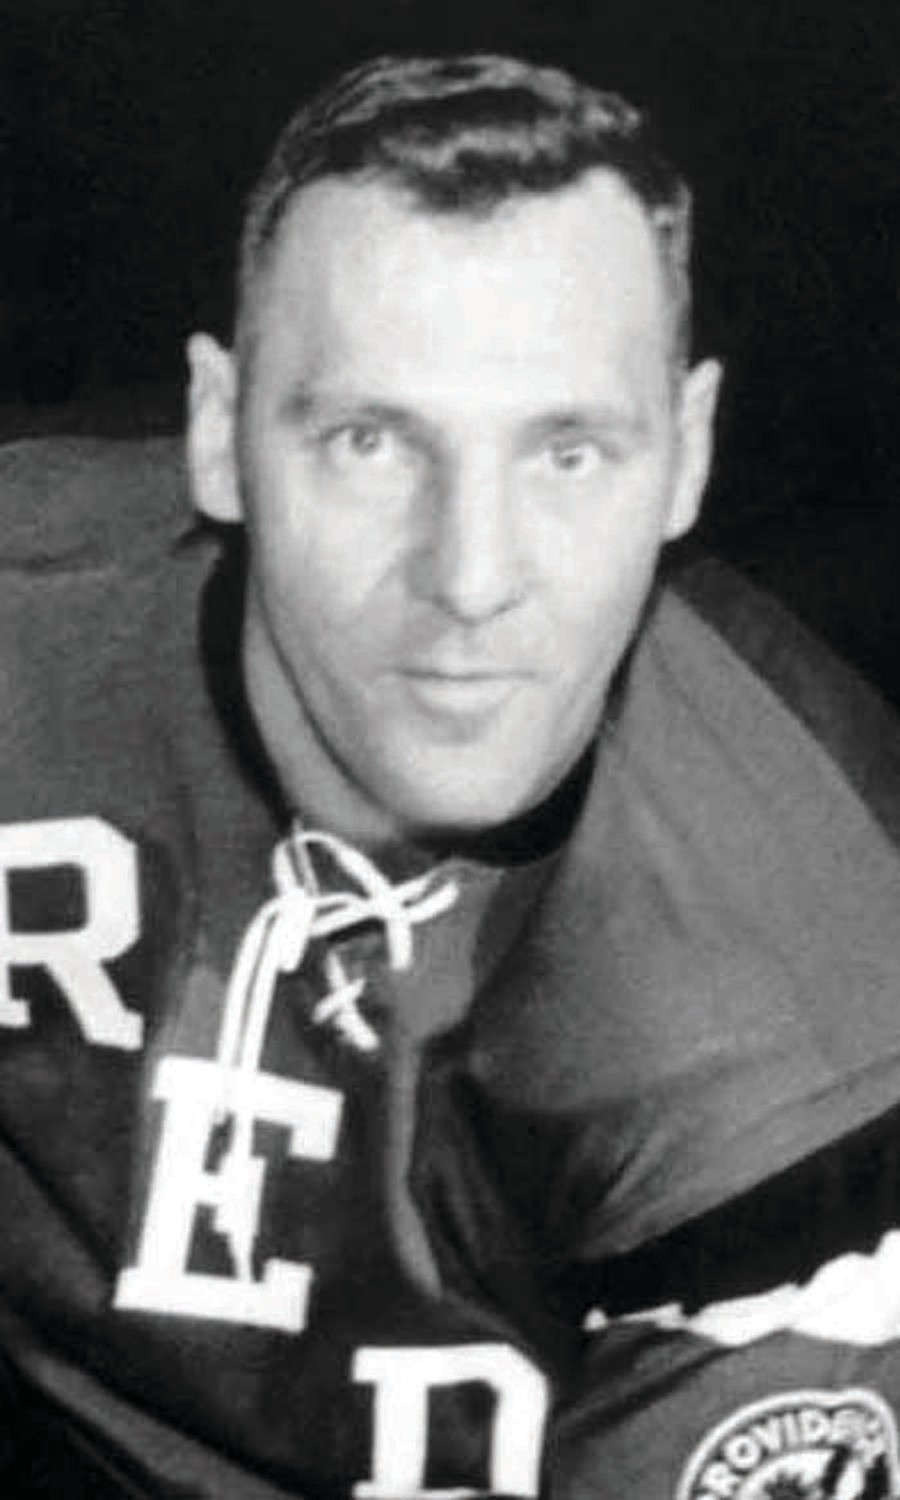 GREAT GAMER: Willie Marshall, the all-time leading scorer for the American Hockey League who played thee seasons with the former Rhode Island Reds, is coming home on Aug. 3-5 to receive the prestigious Ray Ross Perseverance Award during the non-profits 18th Annual Reunion.                                   Submitted photos